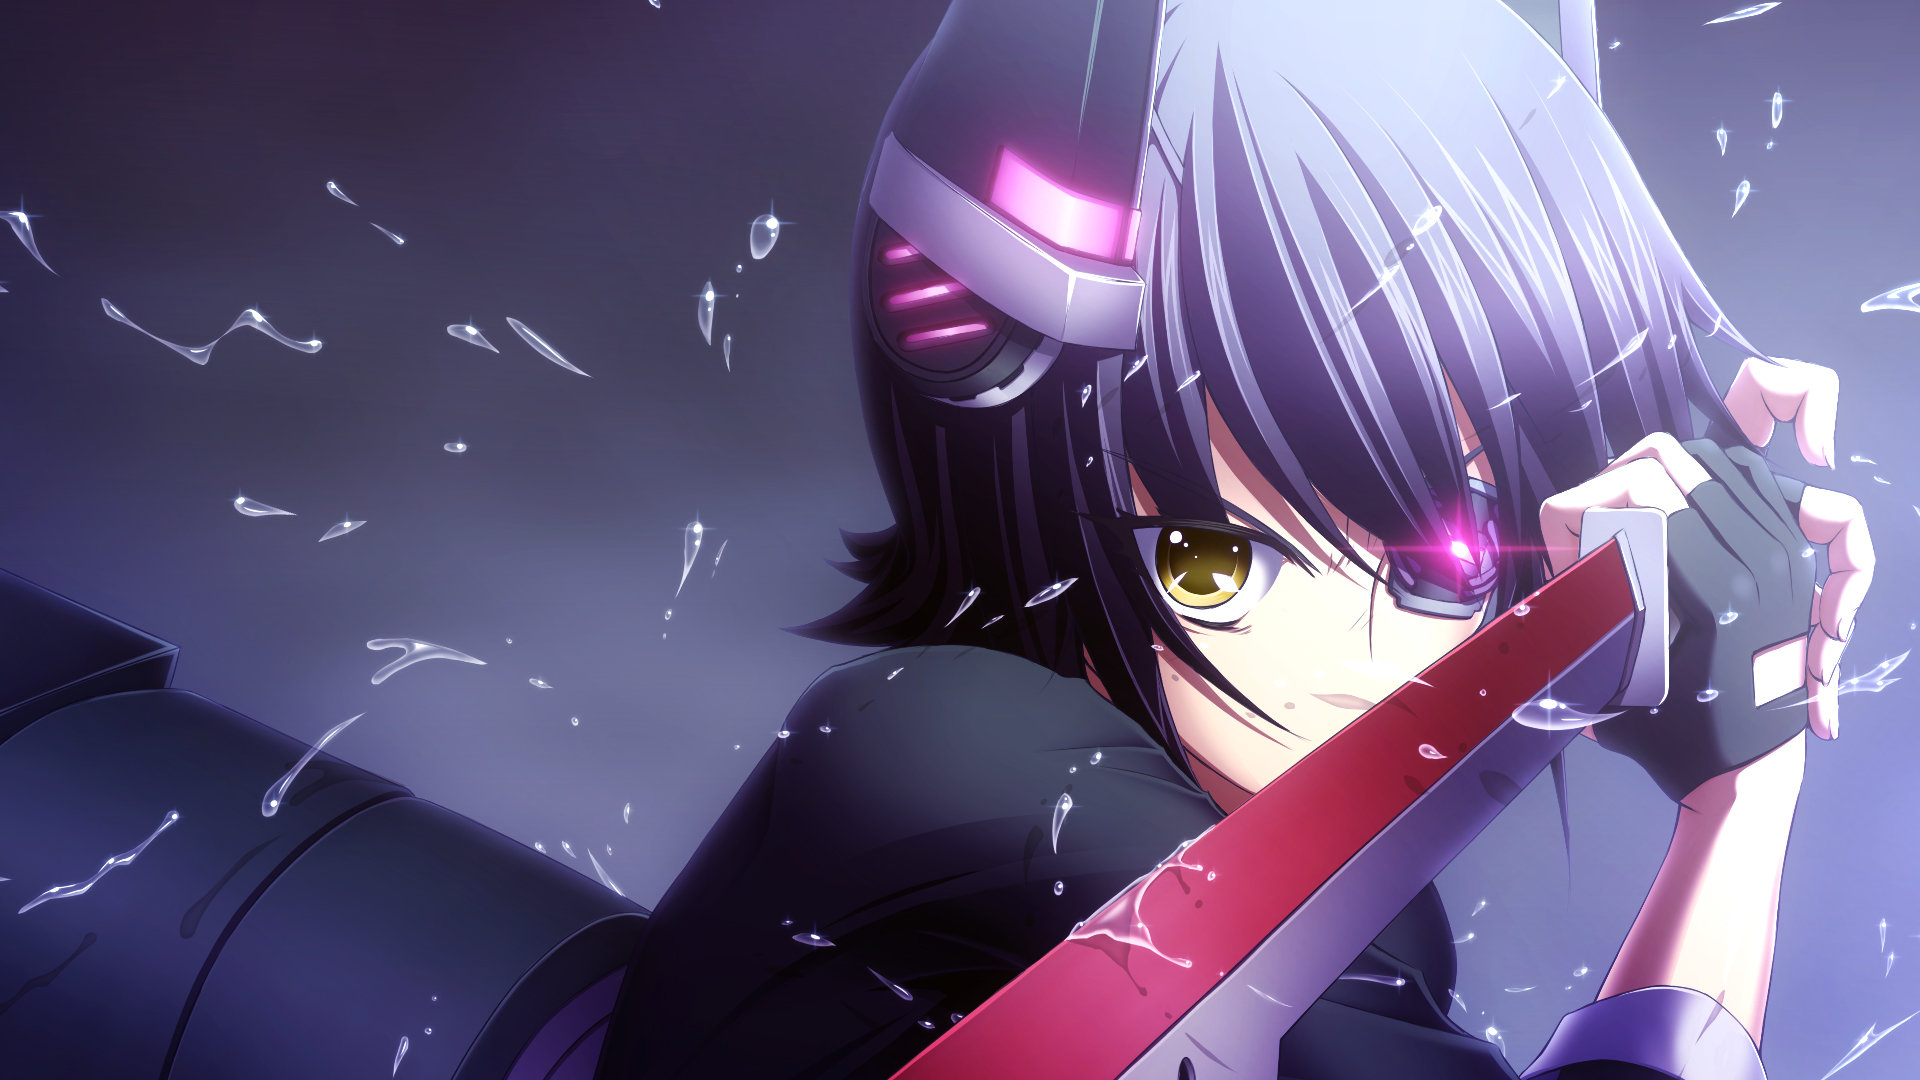 Download full hd 1920x1080 Tenryuu (Kancolle) PC wallpaper ID:330908 for free